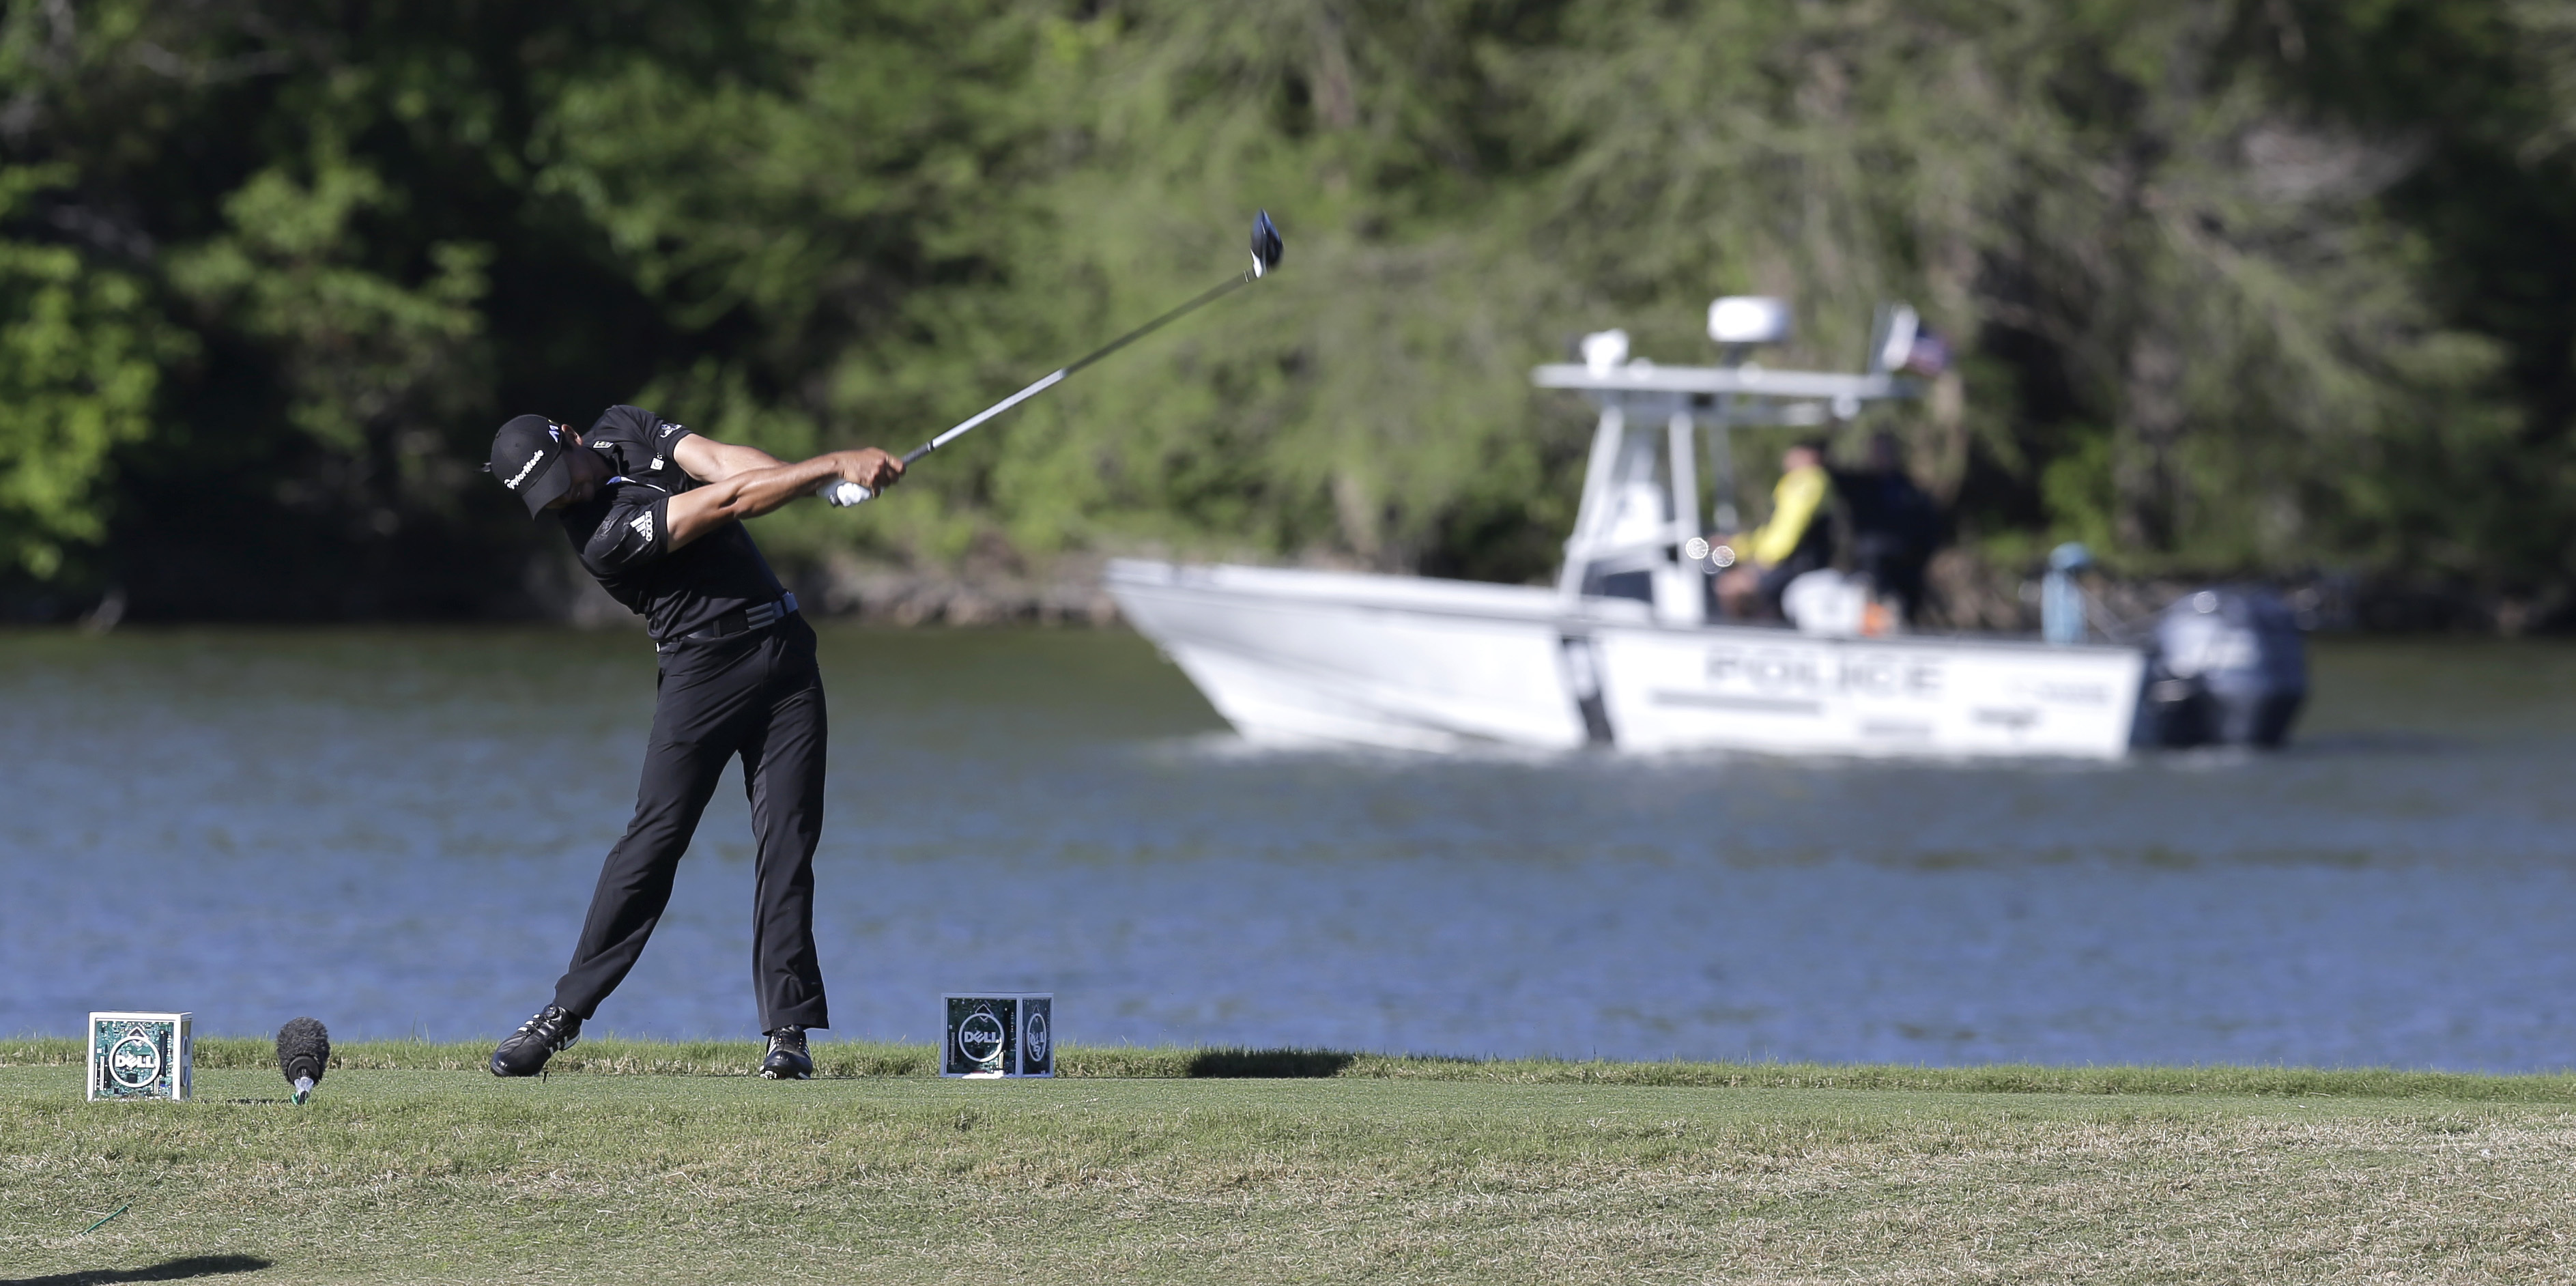 Jason Day, of Australia, hits his tee shot on the 14th hole as a boat passes on Lake Austin during round-robin play against Thongchai Jaidee at the Dell Match Play Championship golf tournament at Austin County Club, Thursday, March 24, 2016, in Austin, Te